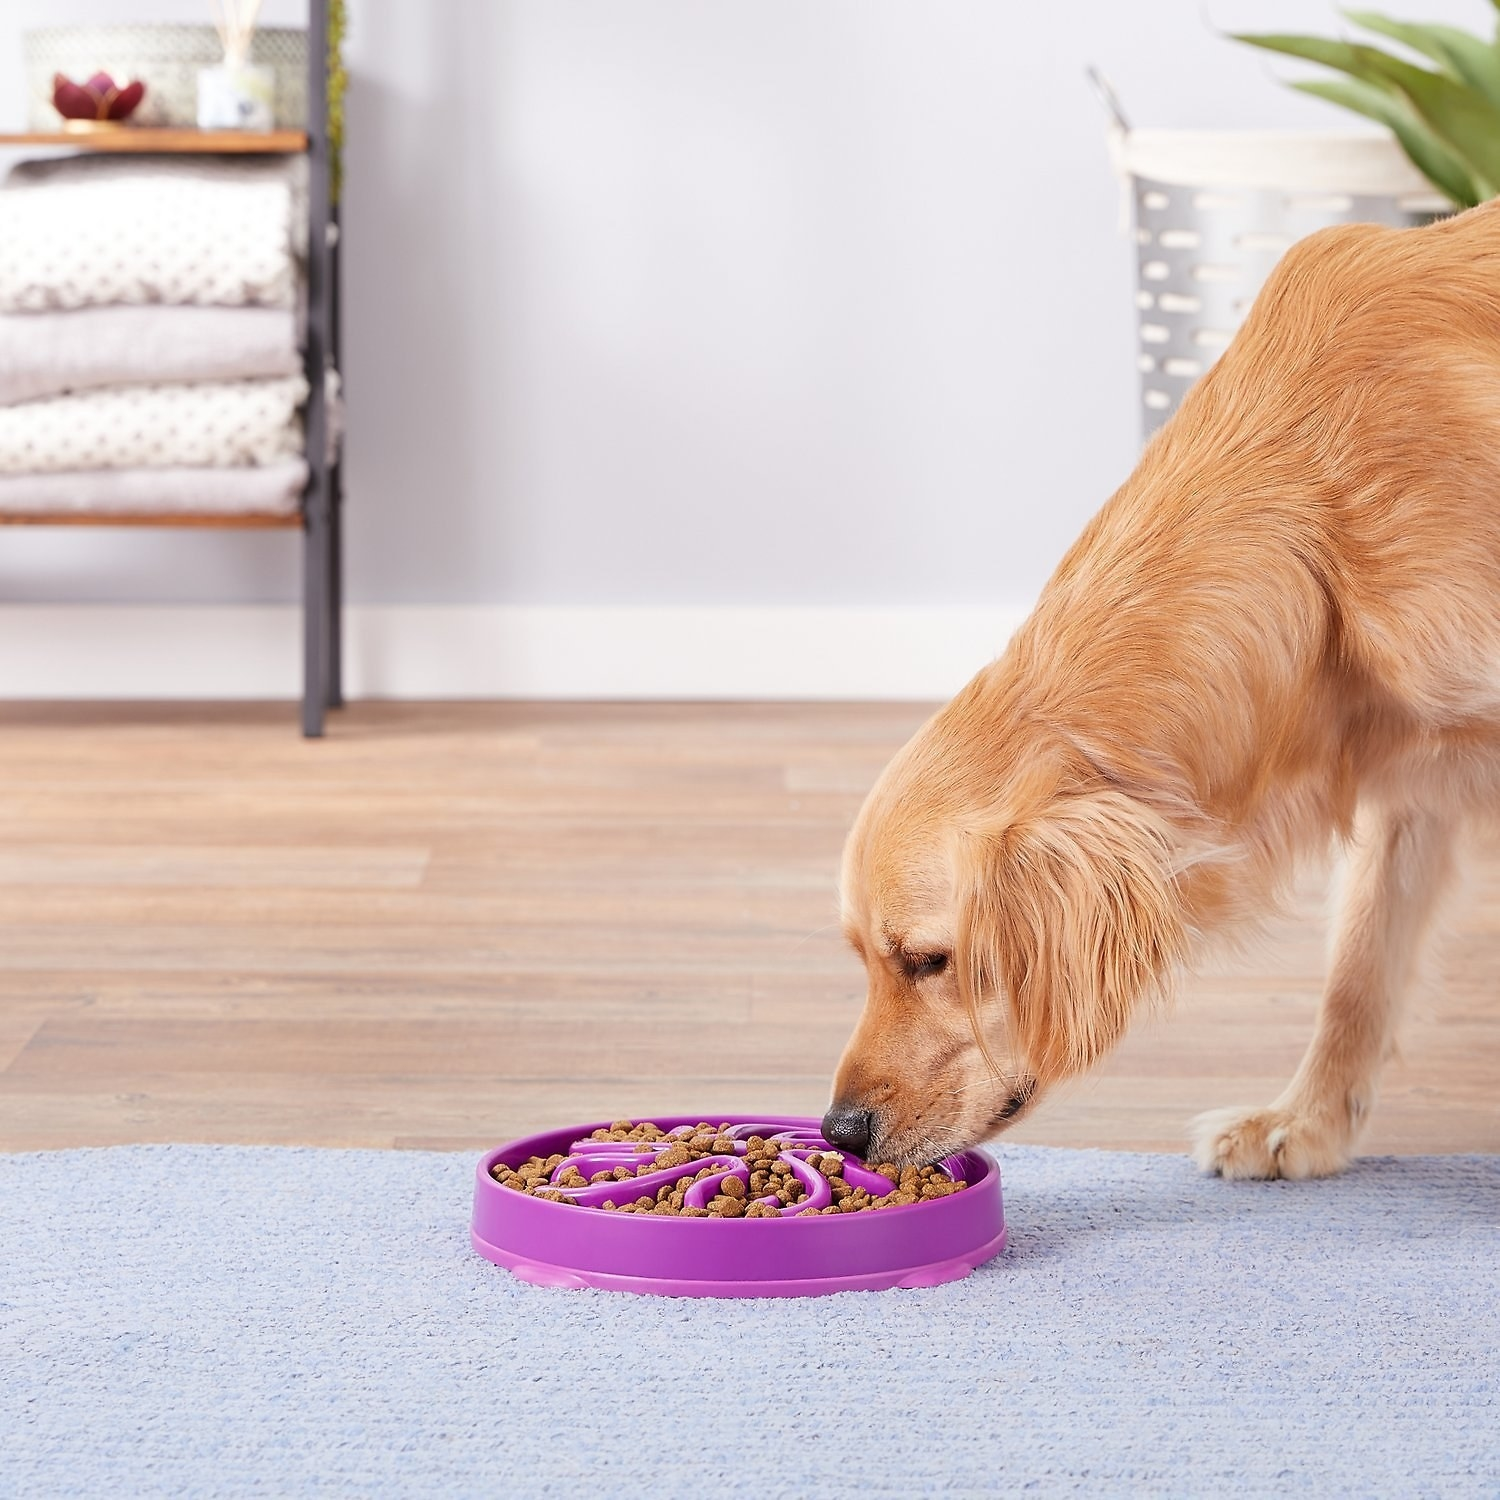 A dog eating out of the round bowl with a maze of food on the surface